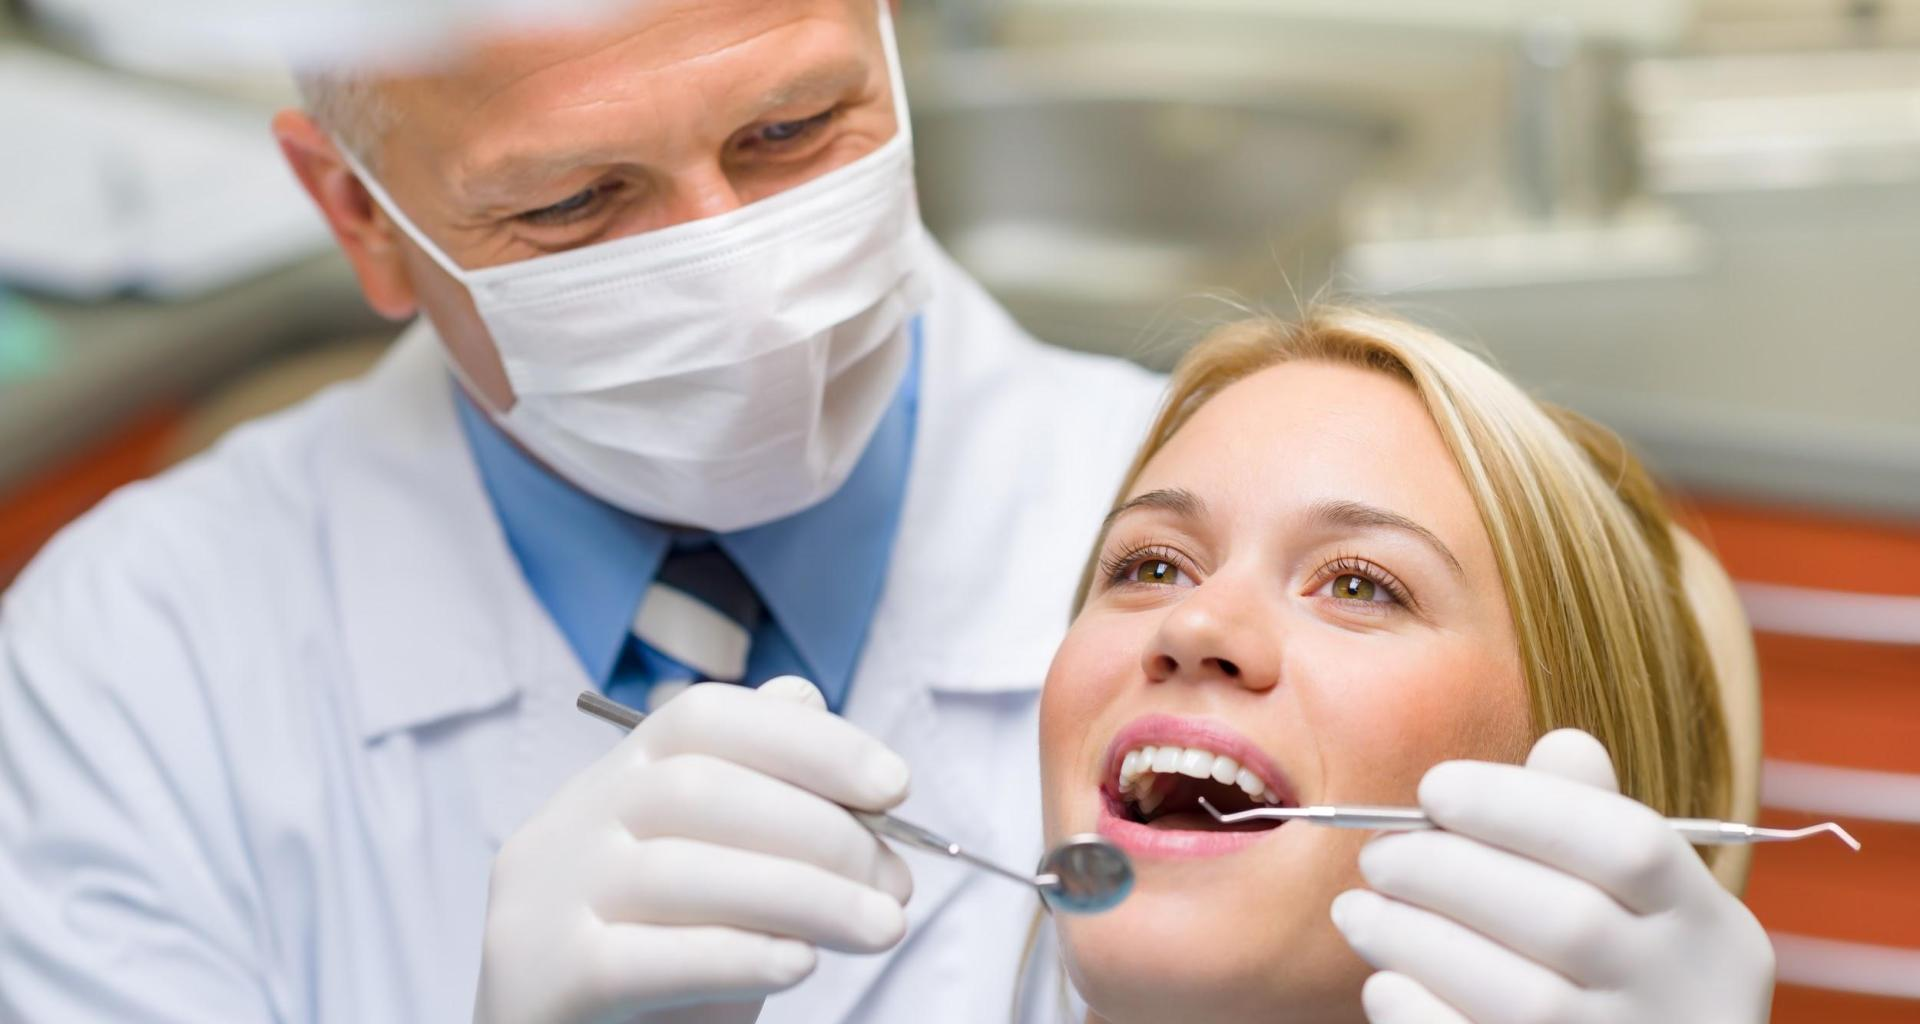 SEO digital marketing online course for Dentists: What You Need to Know to Get Started 1